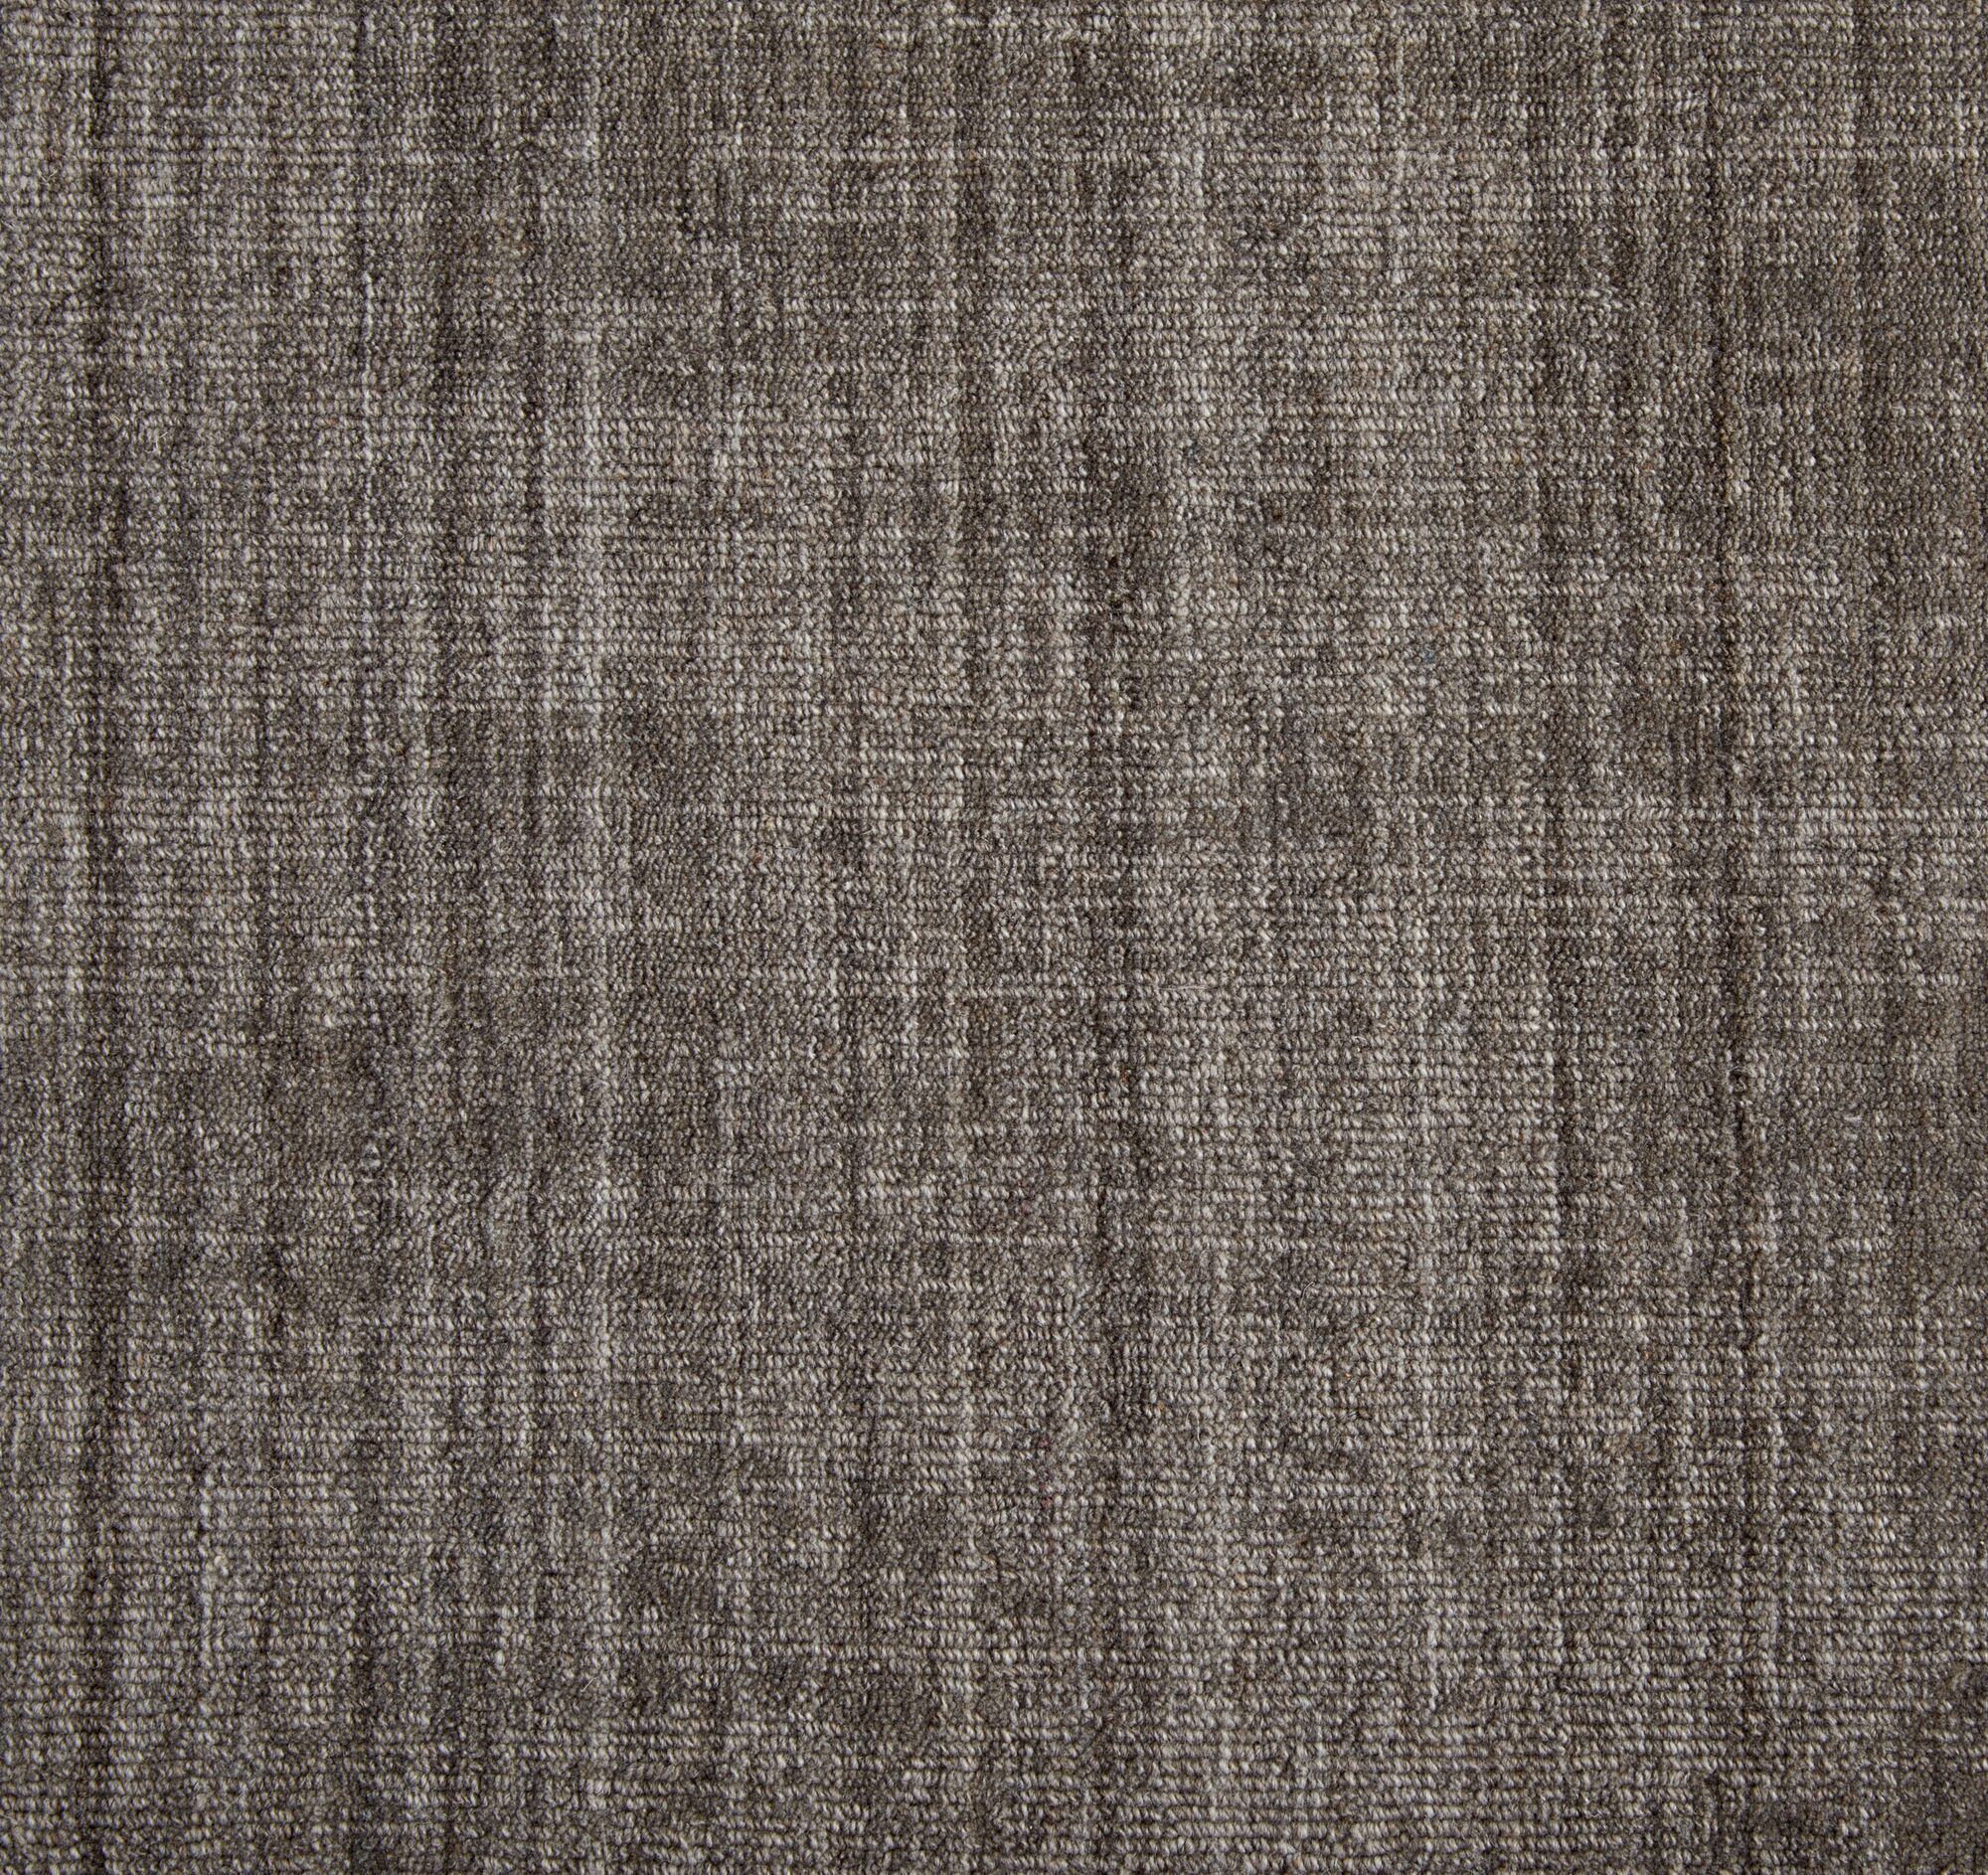 Cumberland Hand-Woven Wool Brown Area Rug Size: Rectangle 10' x 14'